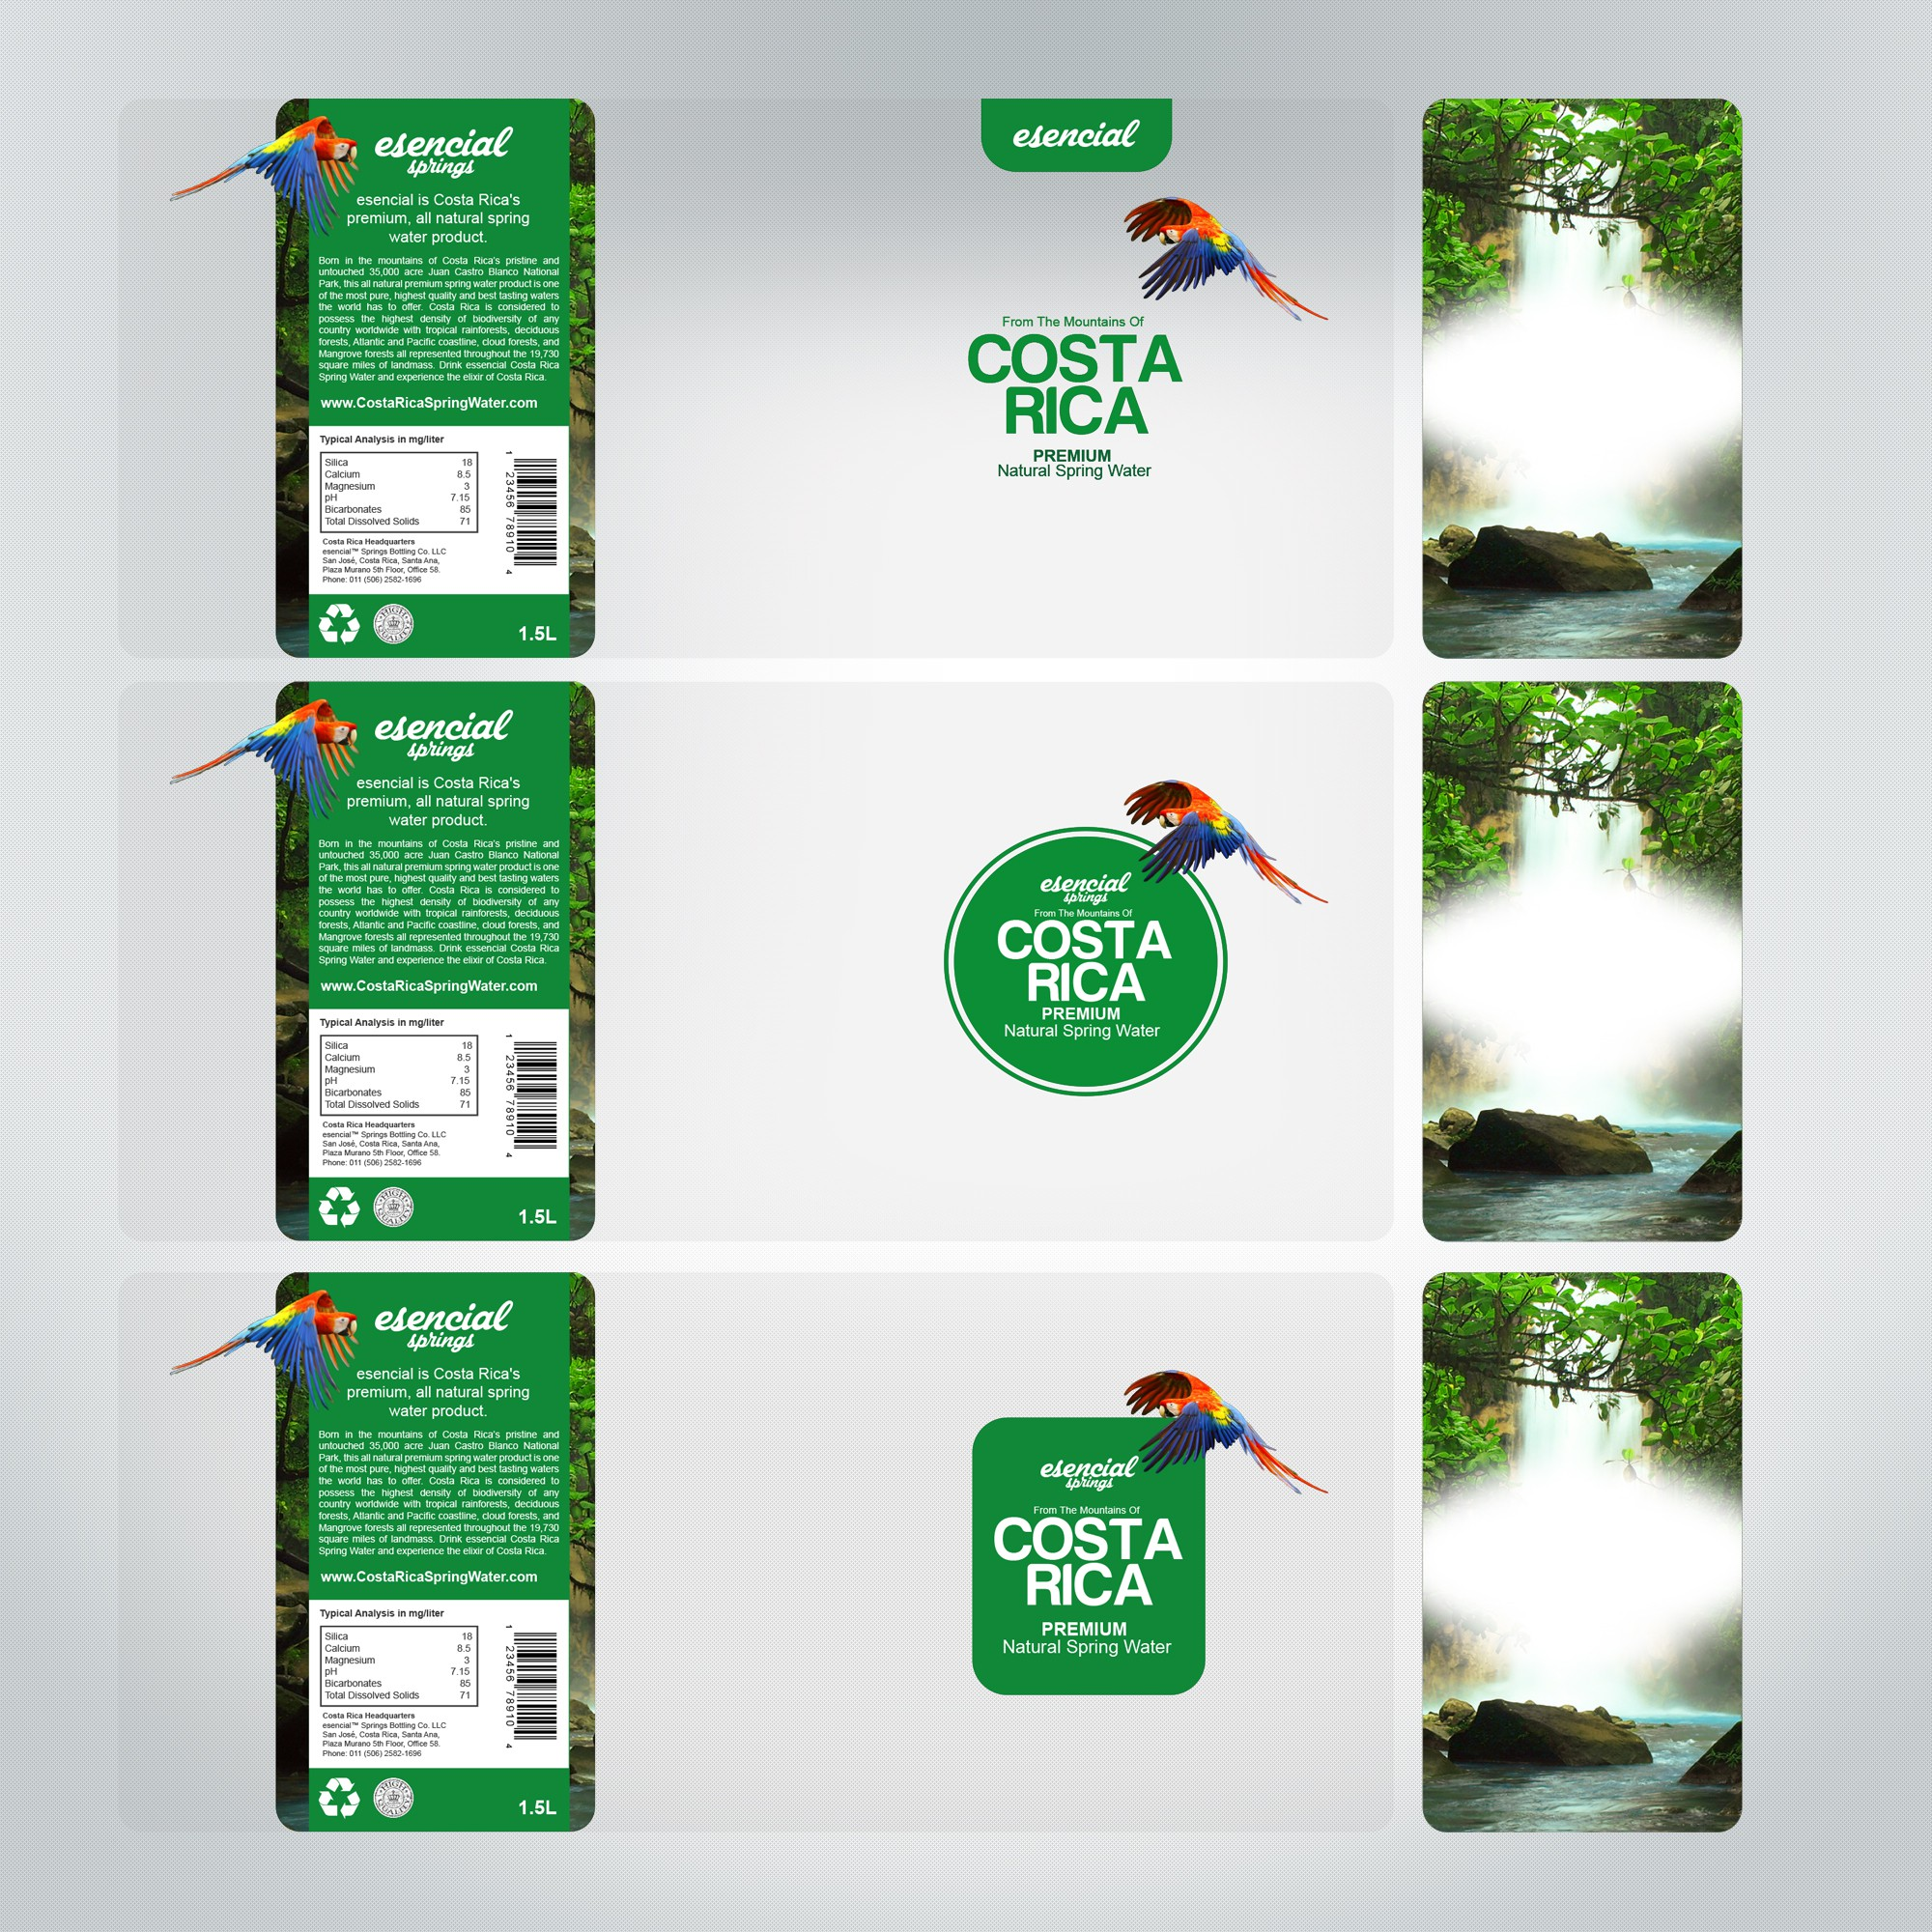 Help me develop the world's first Costa Rica branded bottled water